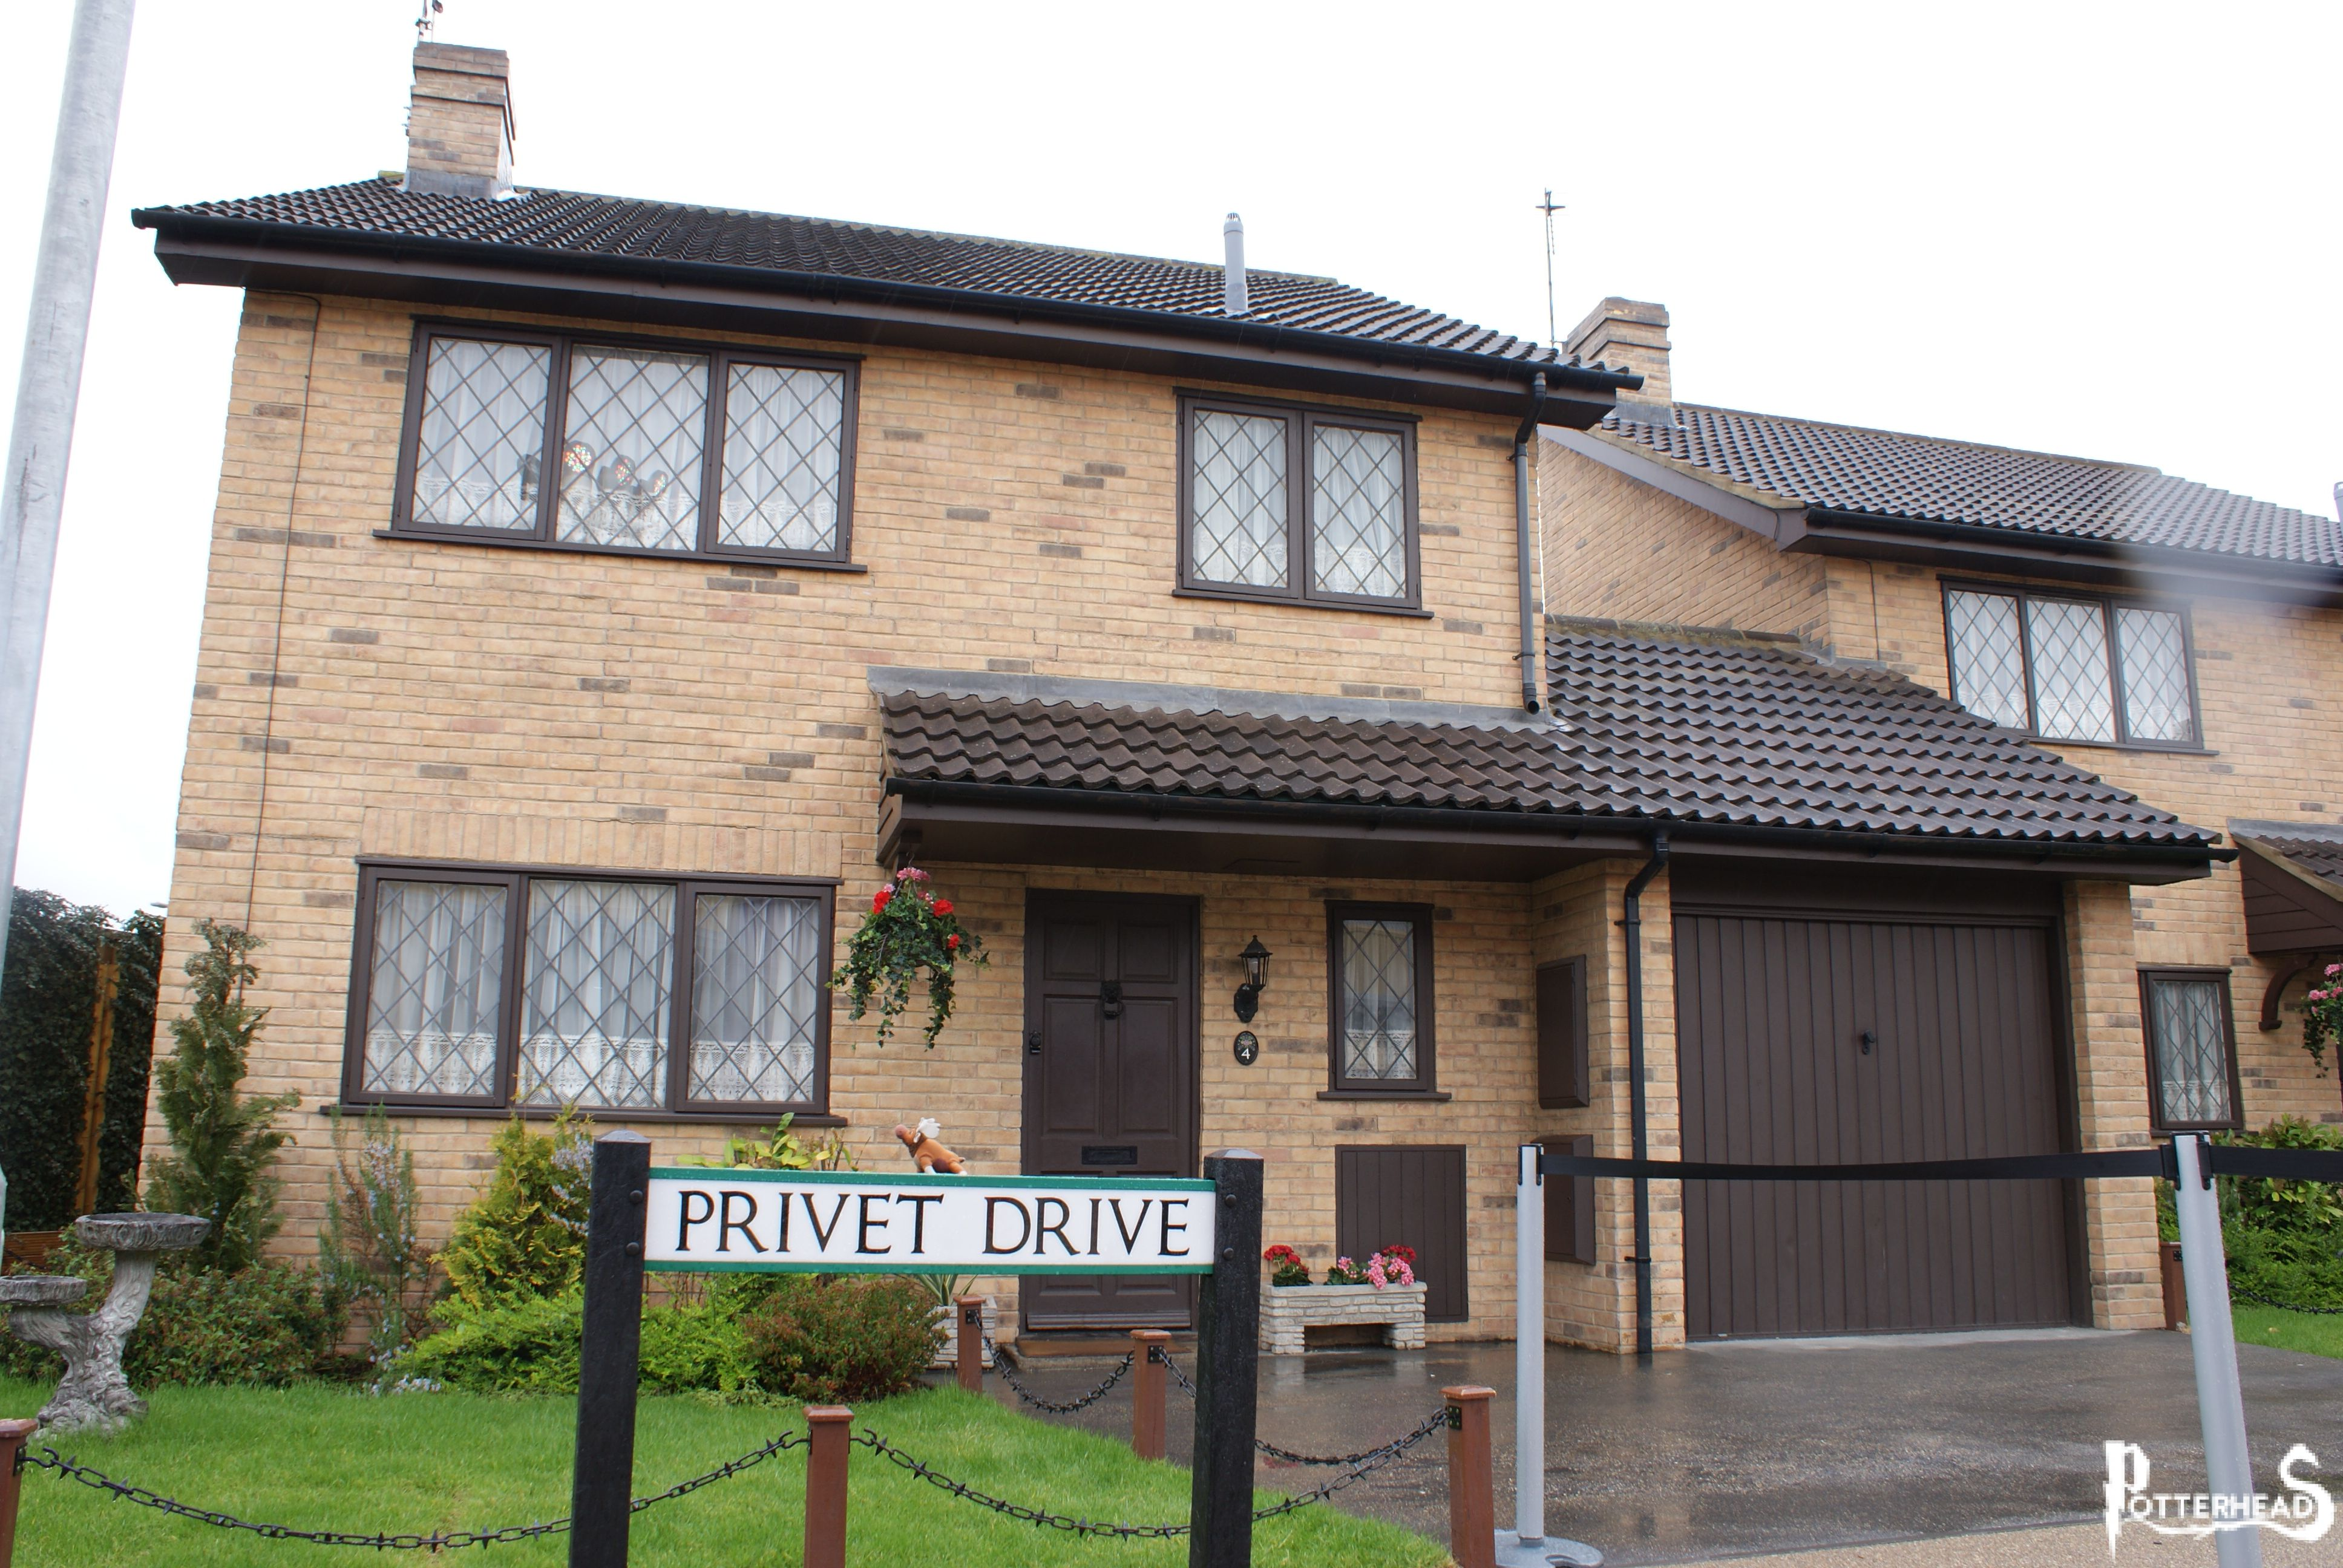 Casa dursley su harry potter enciclopedia by harryweb net - Harry potter casa ...